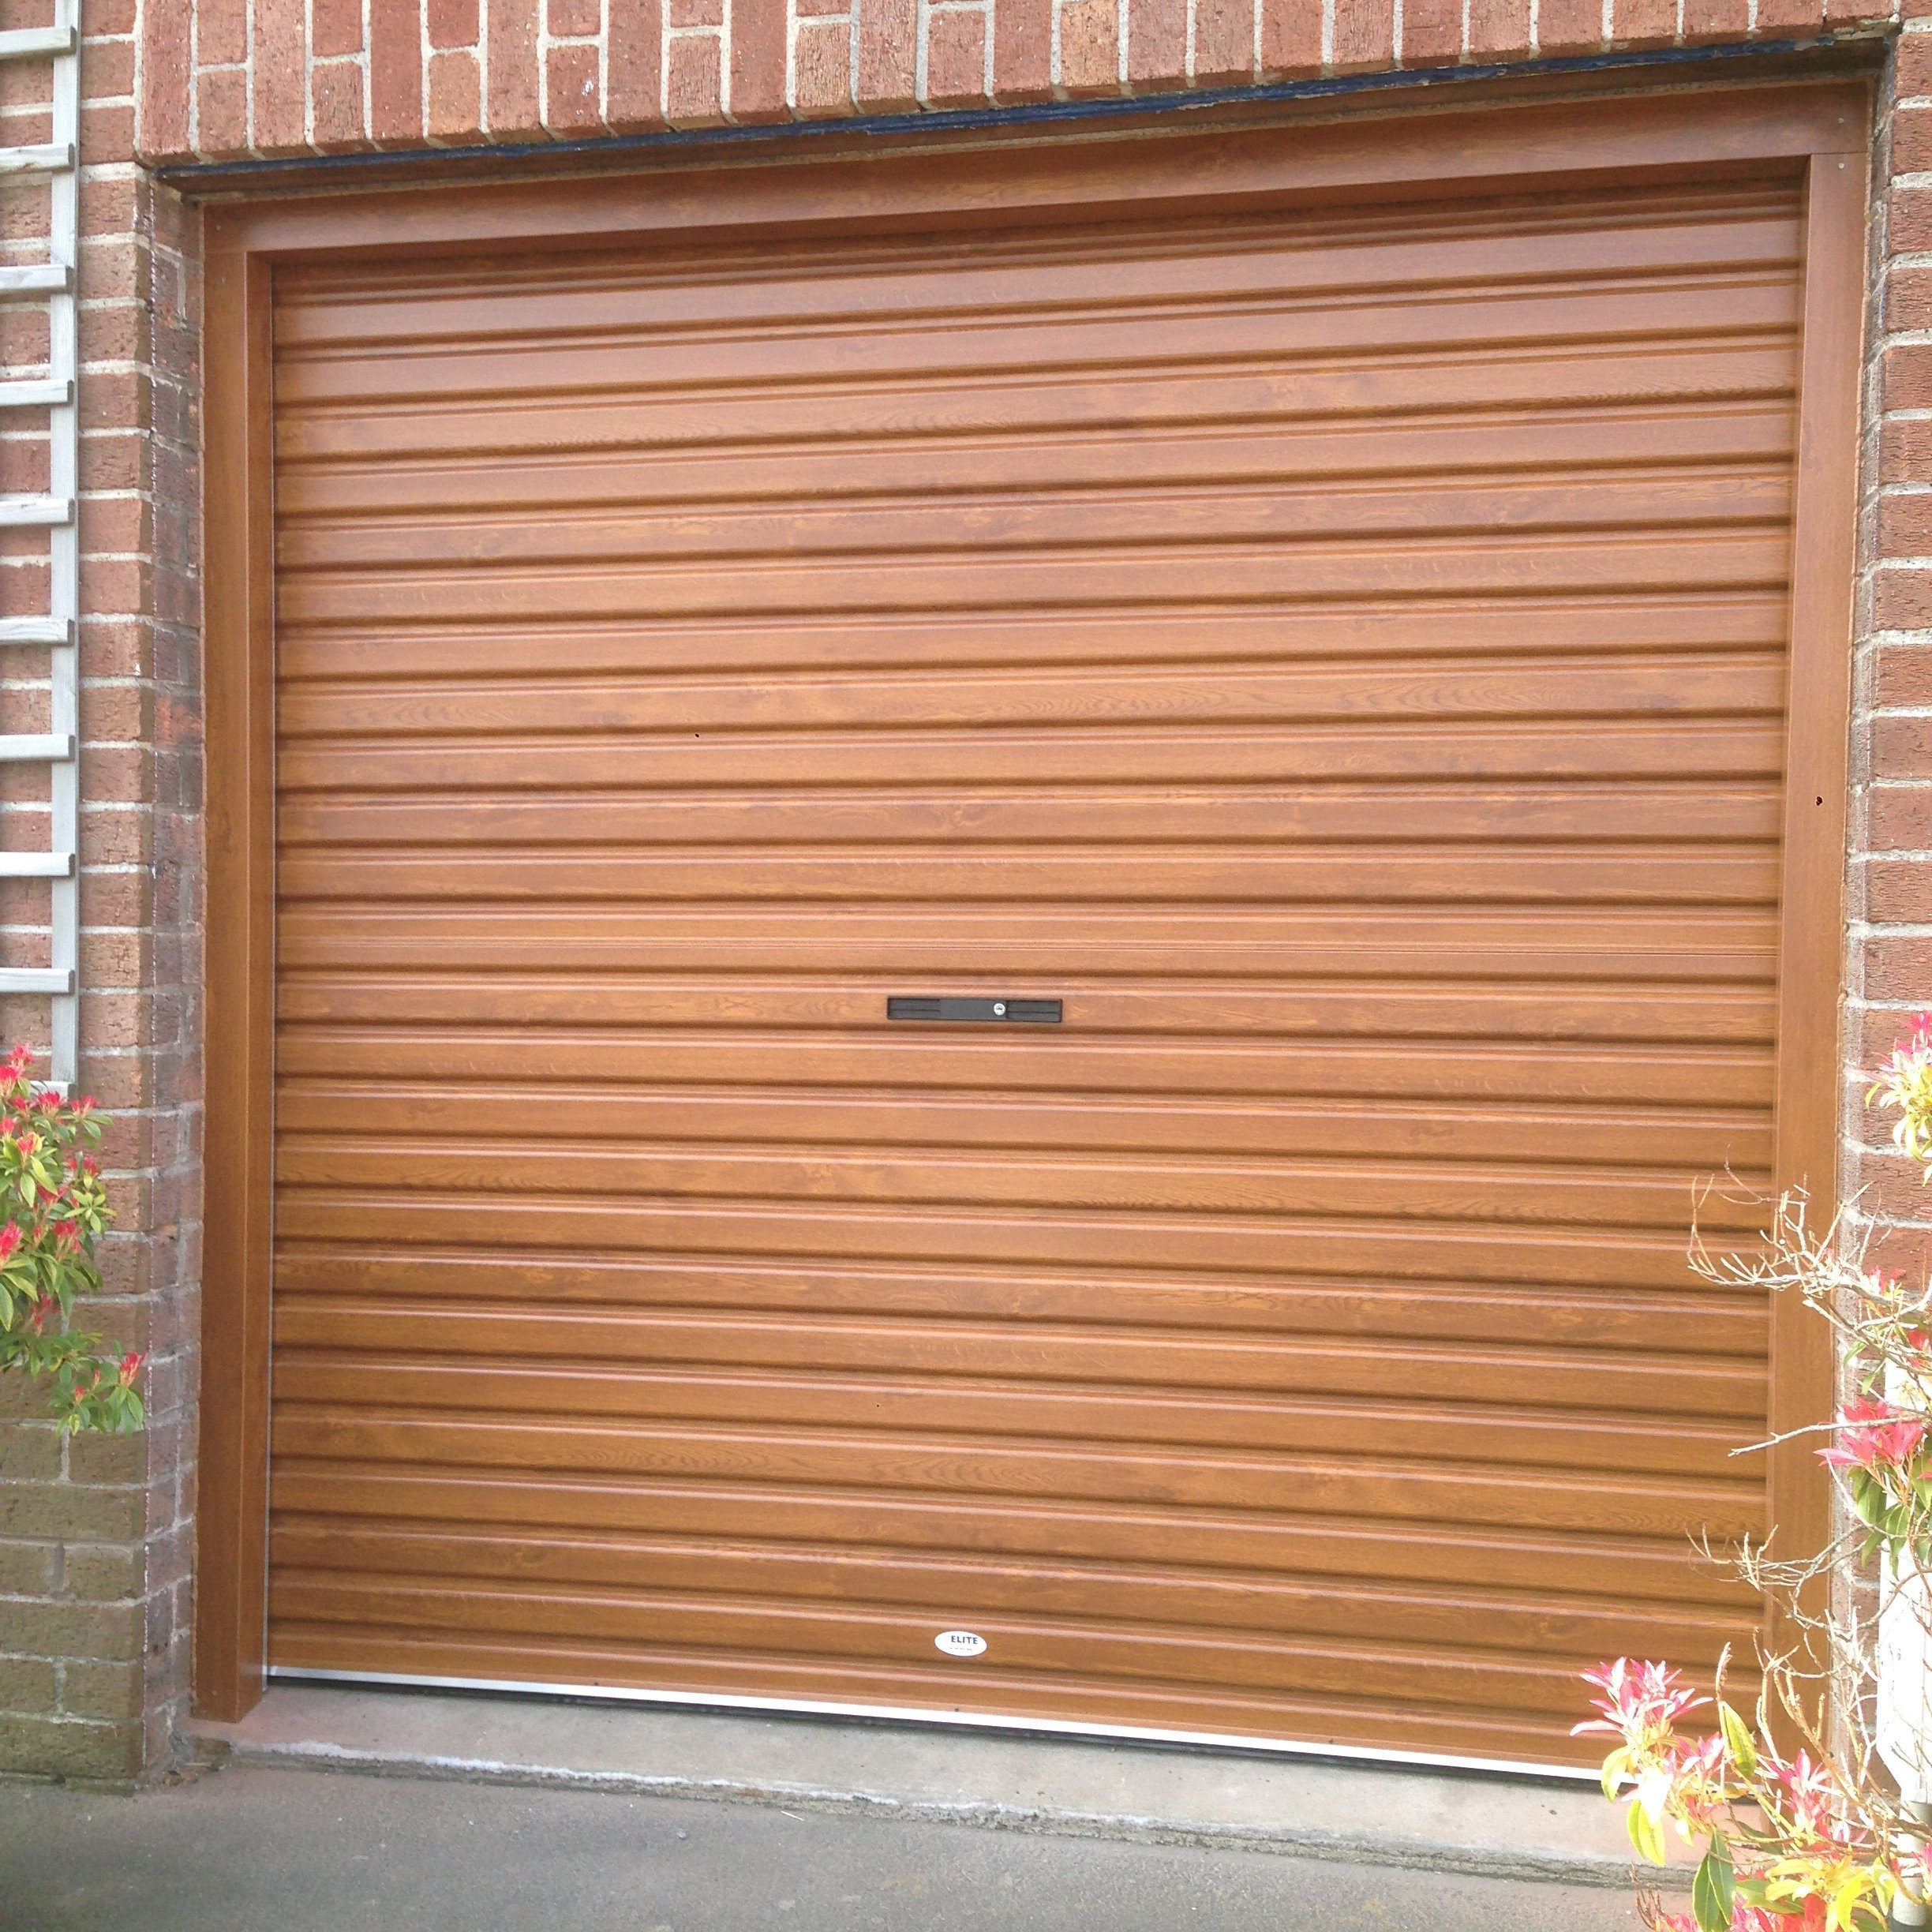 Garage door specialists at elite garage doors in comber and belfast shutter rubansaba